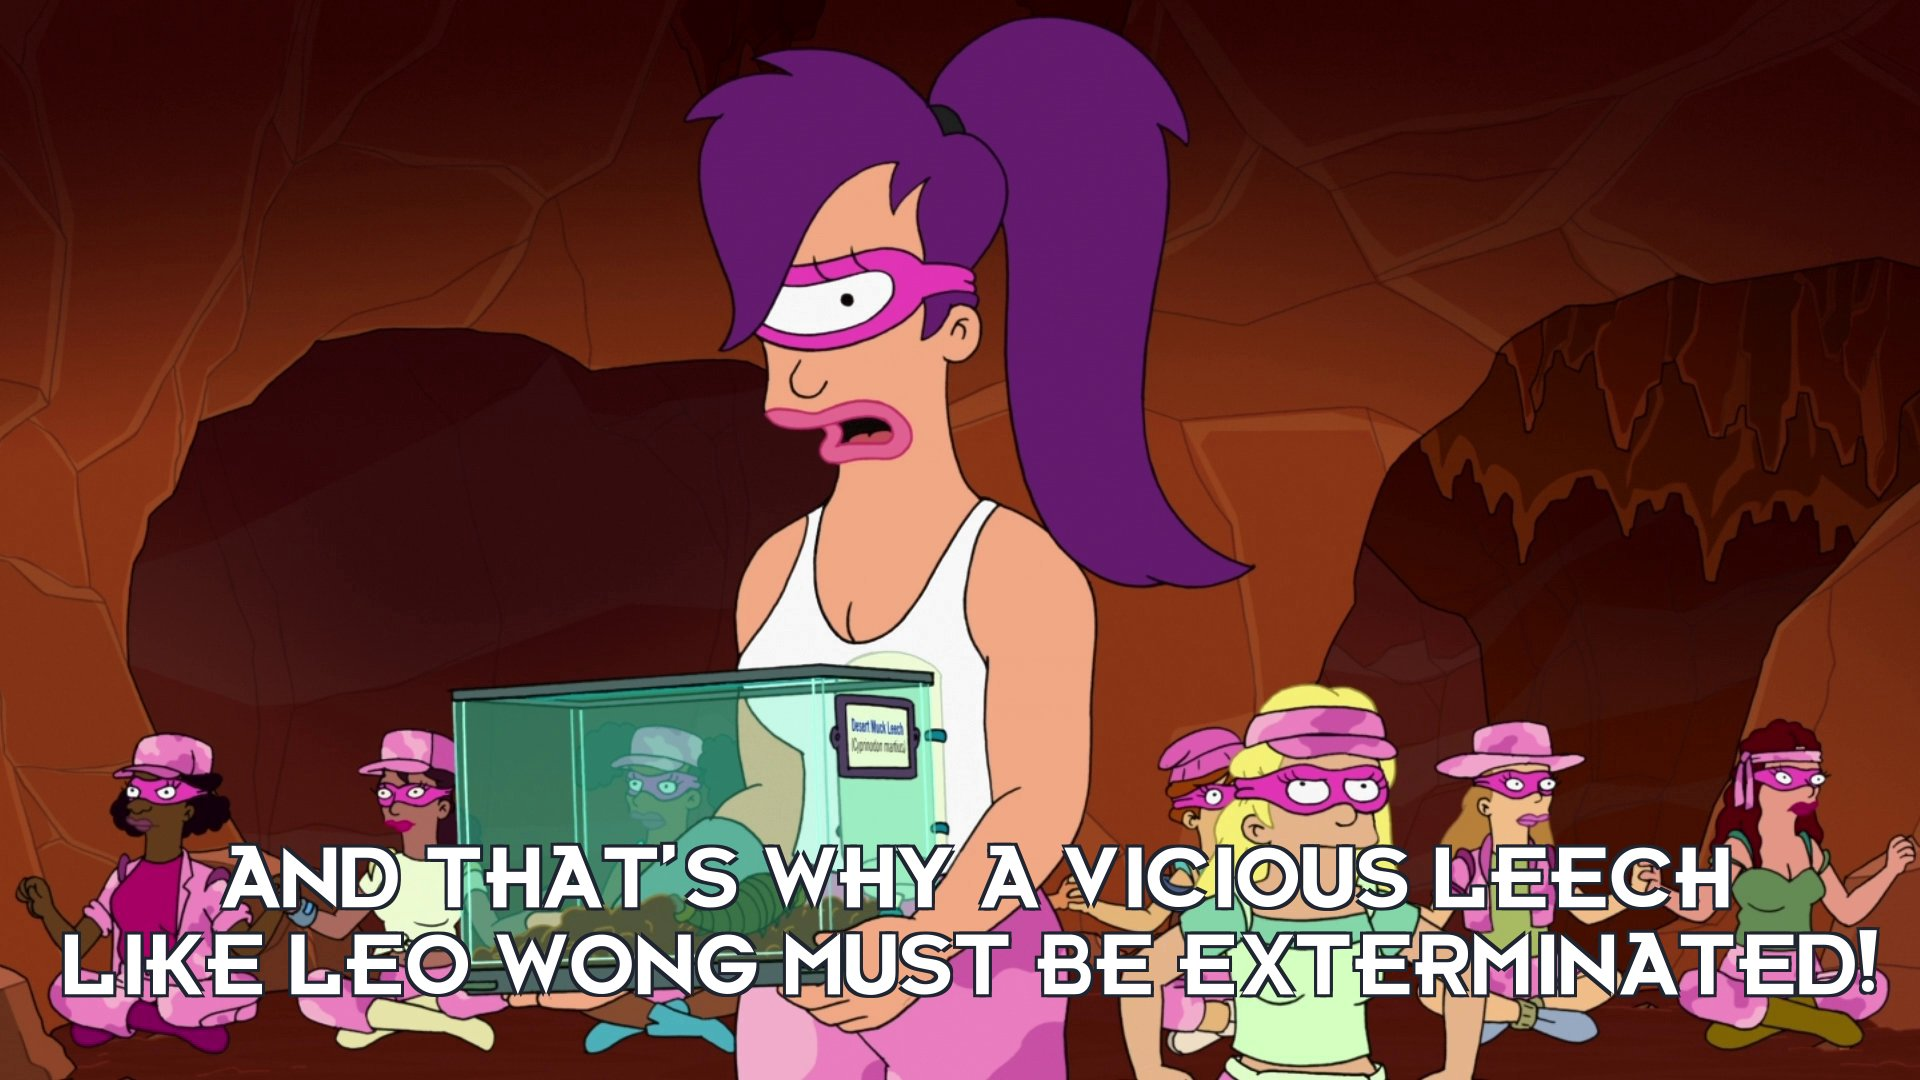 Turanga Leela: And that's why a vicious leech like Leo Wong must be exterminated!